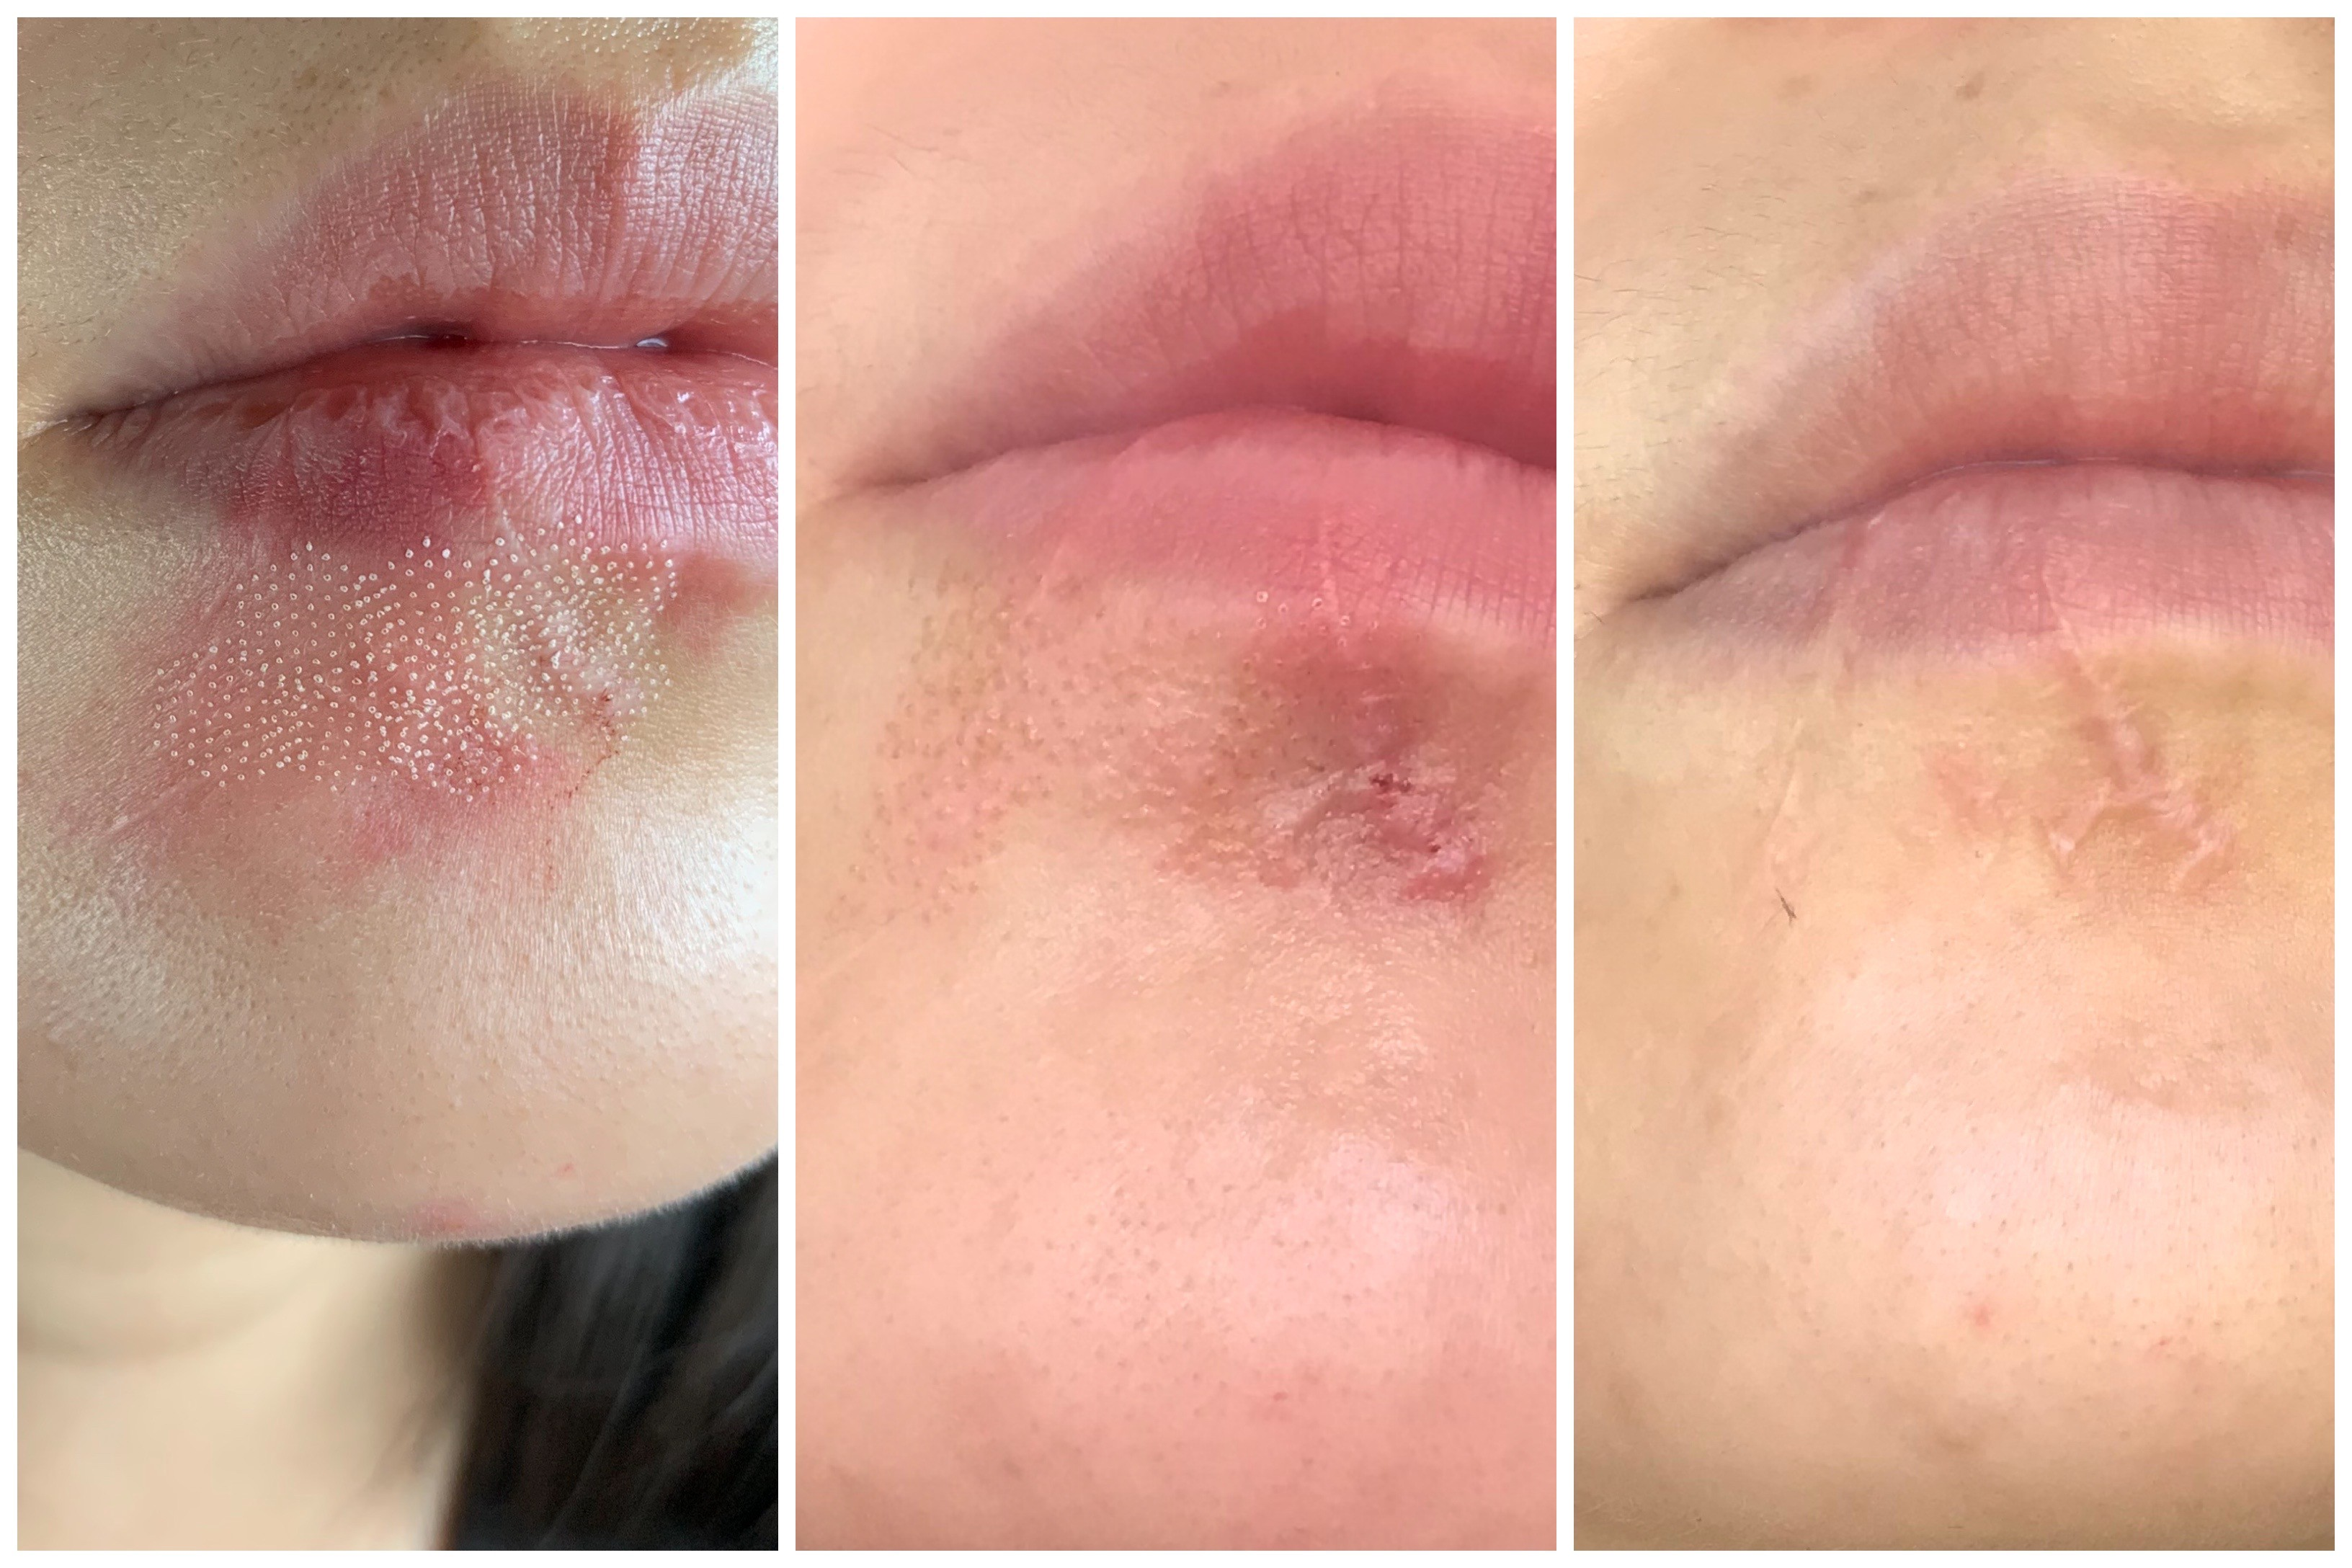 A series of 3 images showing what my mouth scars looked like right after laser treatment, a few days later, then healed